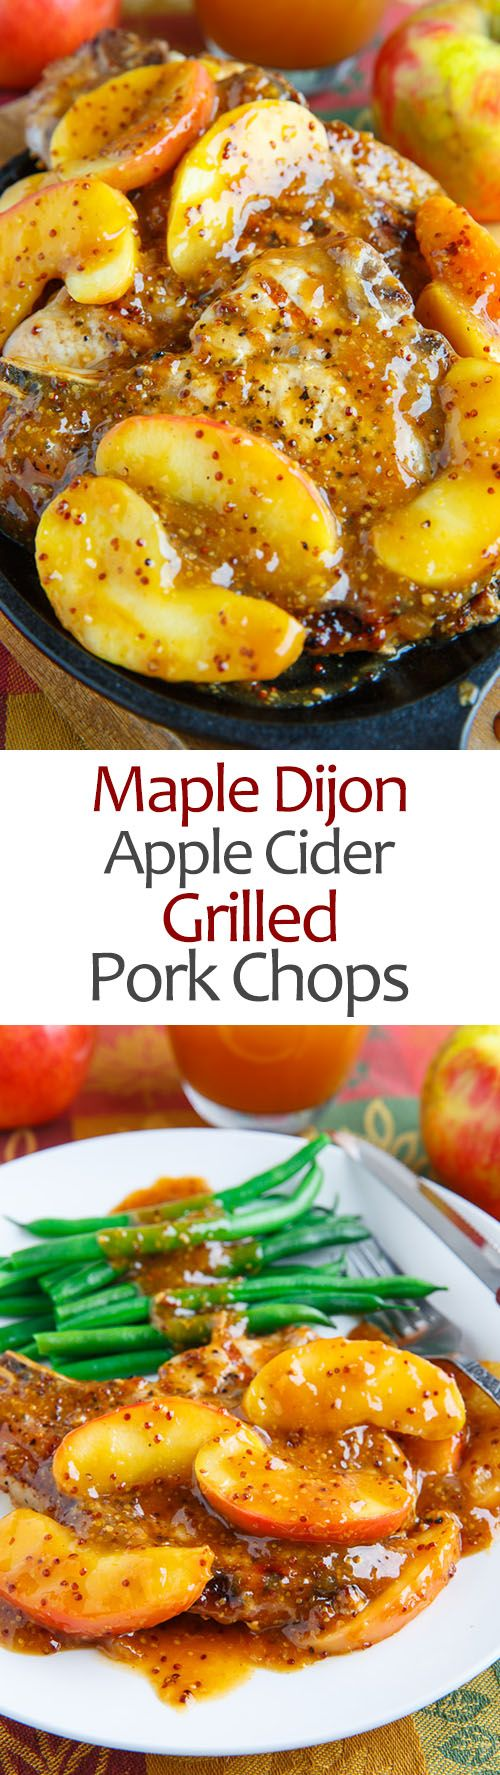 Maple Dijon Apple Cider Grilled Pork Chops